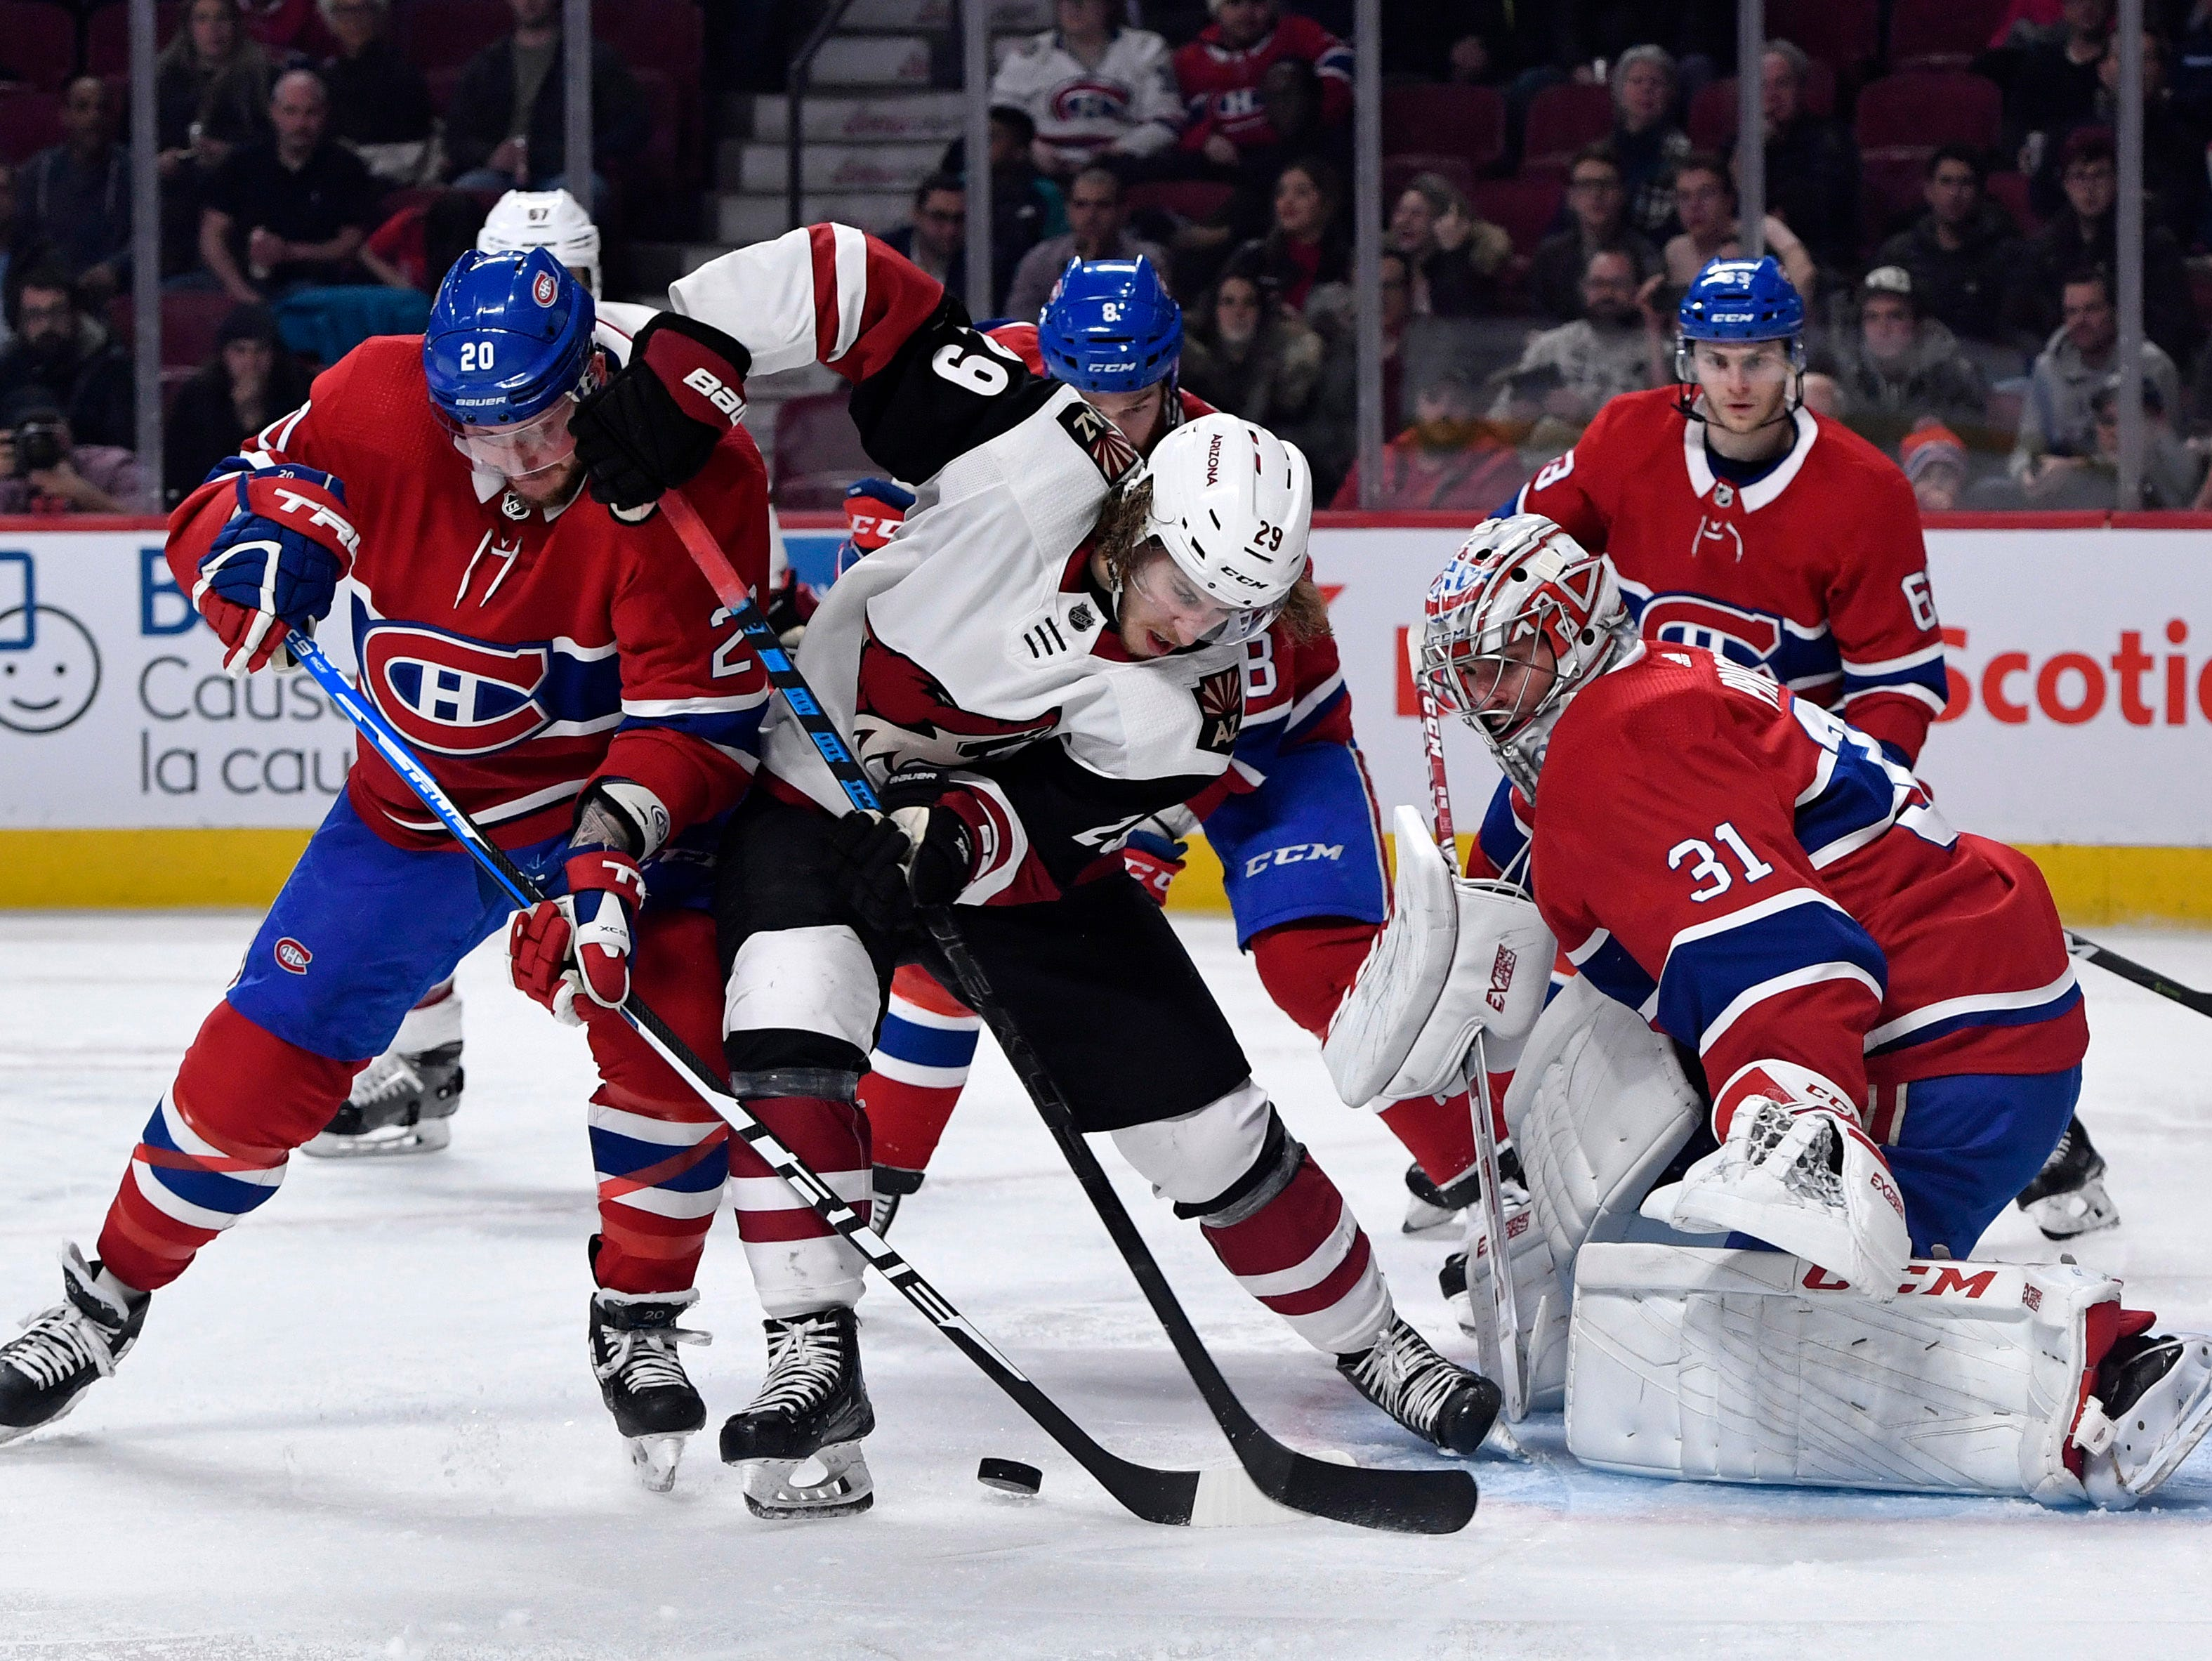 Jan 23, 2019; Montreal, Quebec, CAN; Arizona Coyotes forward Mario Kempe (29) attempts to control the puck as Montreal Canadiens goalie Carey Price (31) and Canadiens forward Nicolas Deslauriers (20) defend during the second period at the Bell Centre. Mandatory Credit: Eric Bolte-USA TODAY Sports